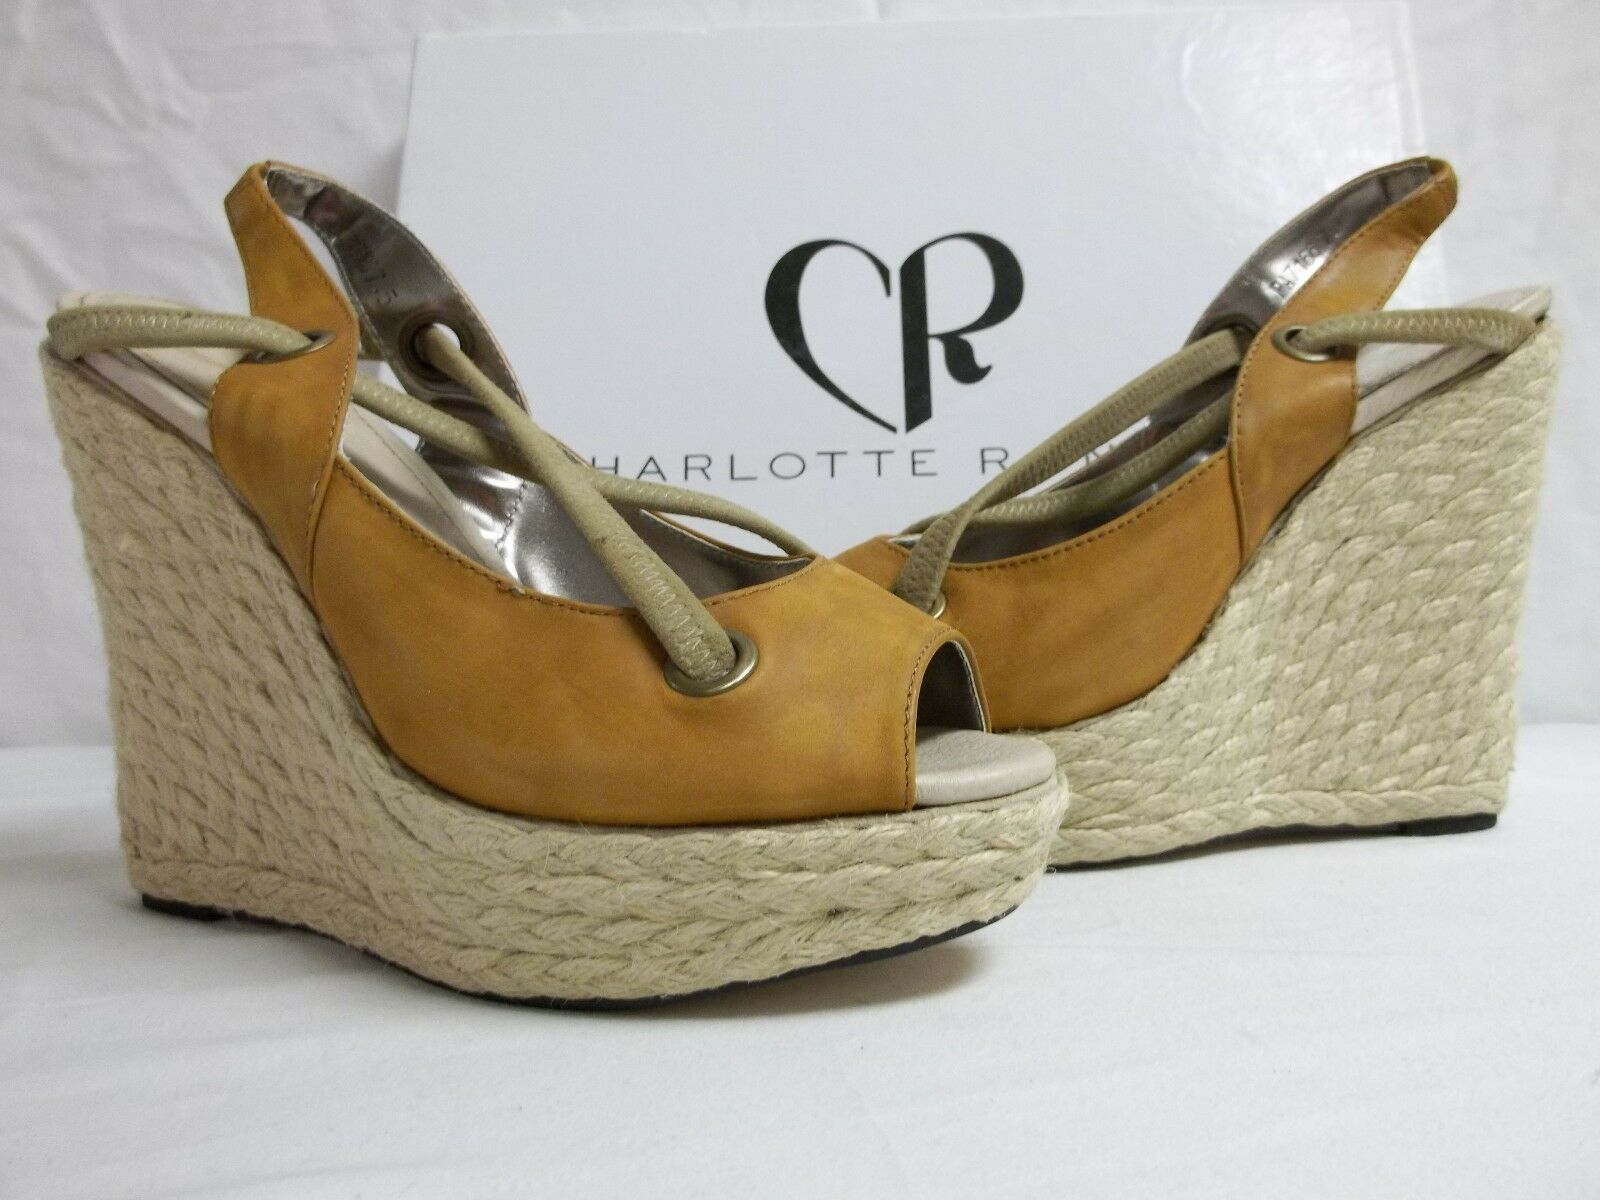 Charlotte Ronson Taille 7.5 m joshephine en cuir camel talons compenses NEW Chaussures Pointure